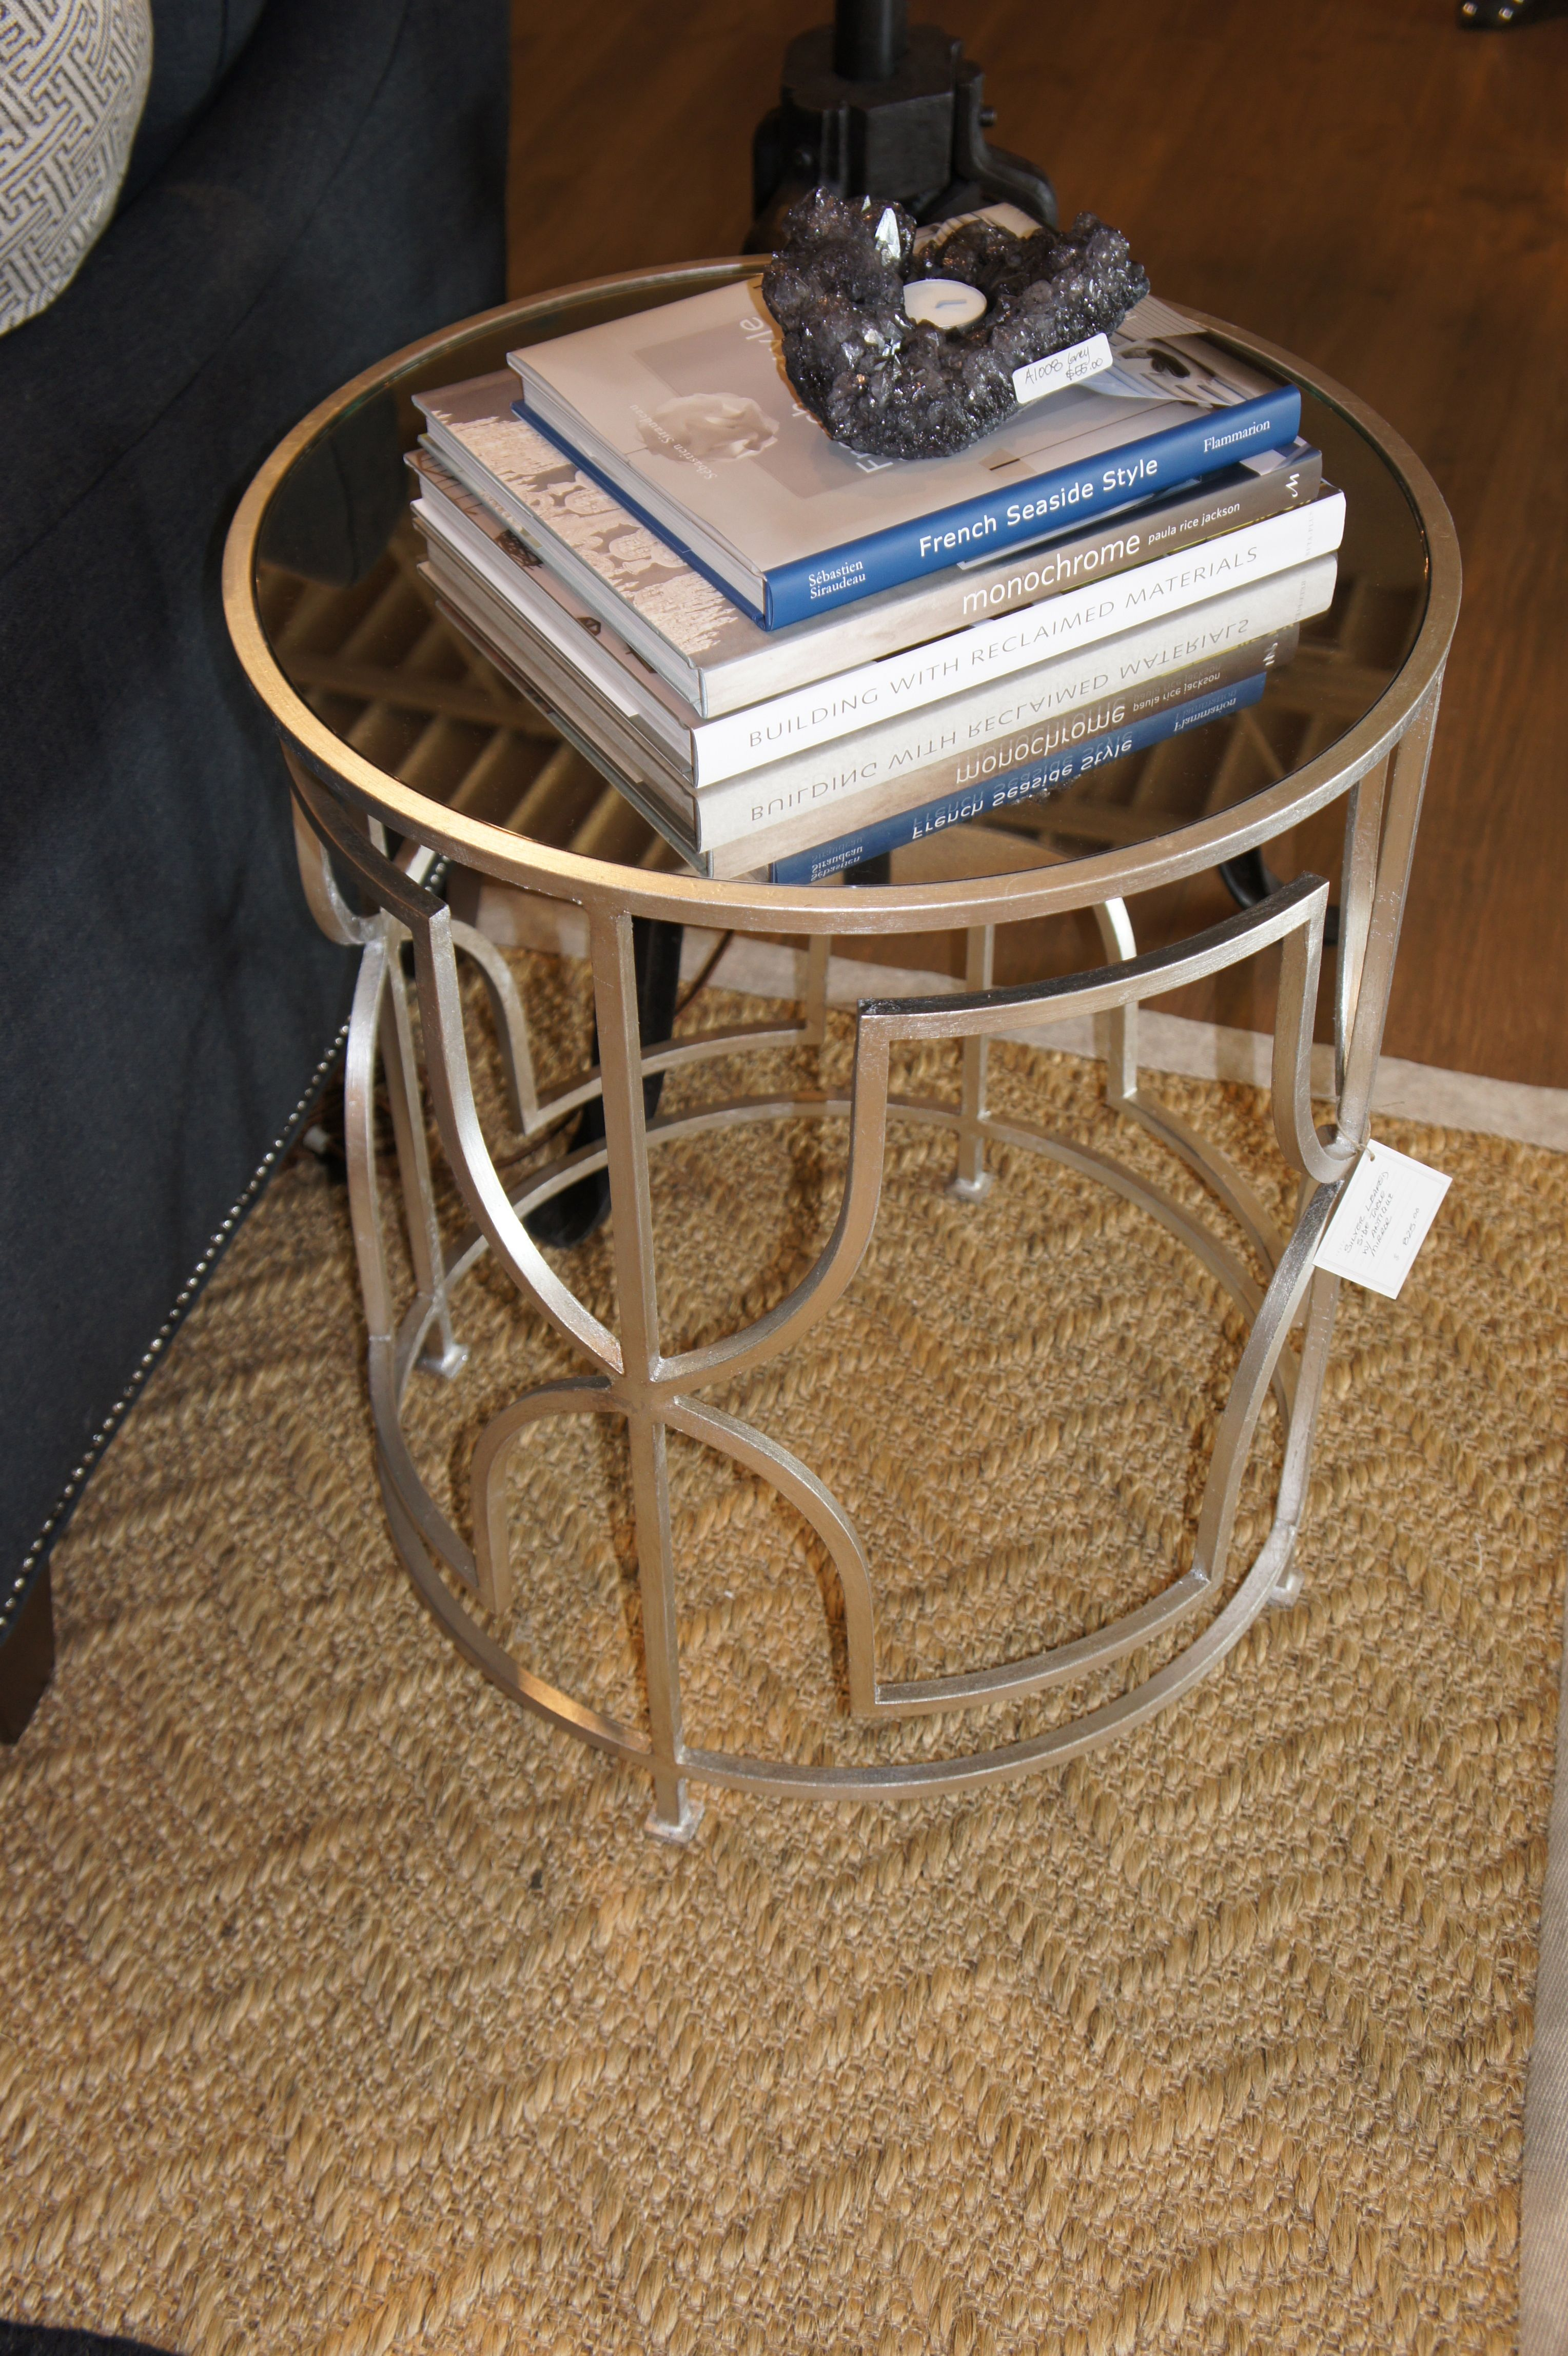 Mirrored Top, Open Metal Base - May 2012